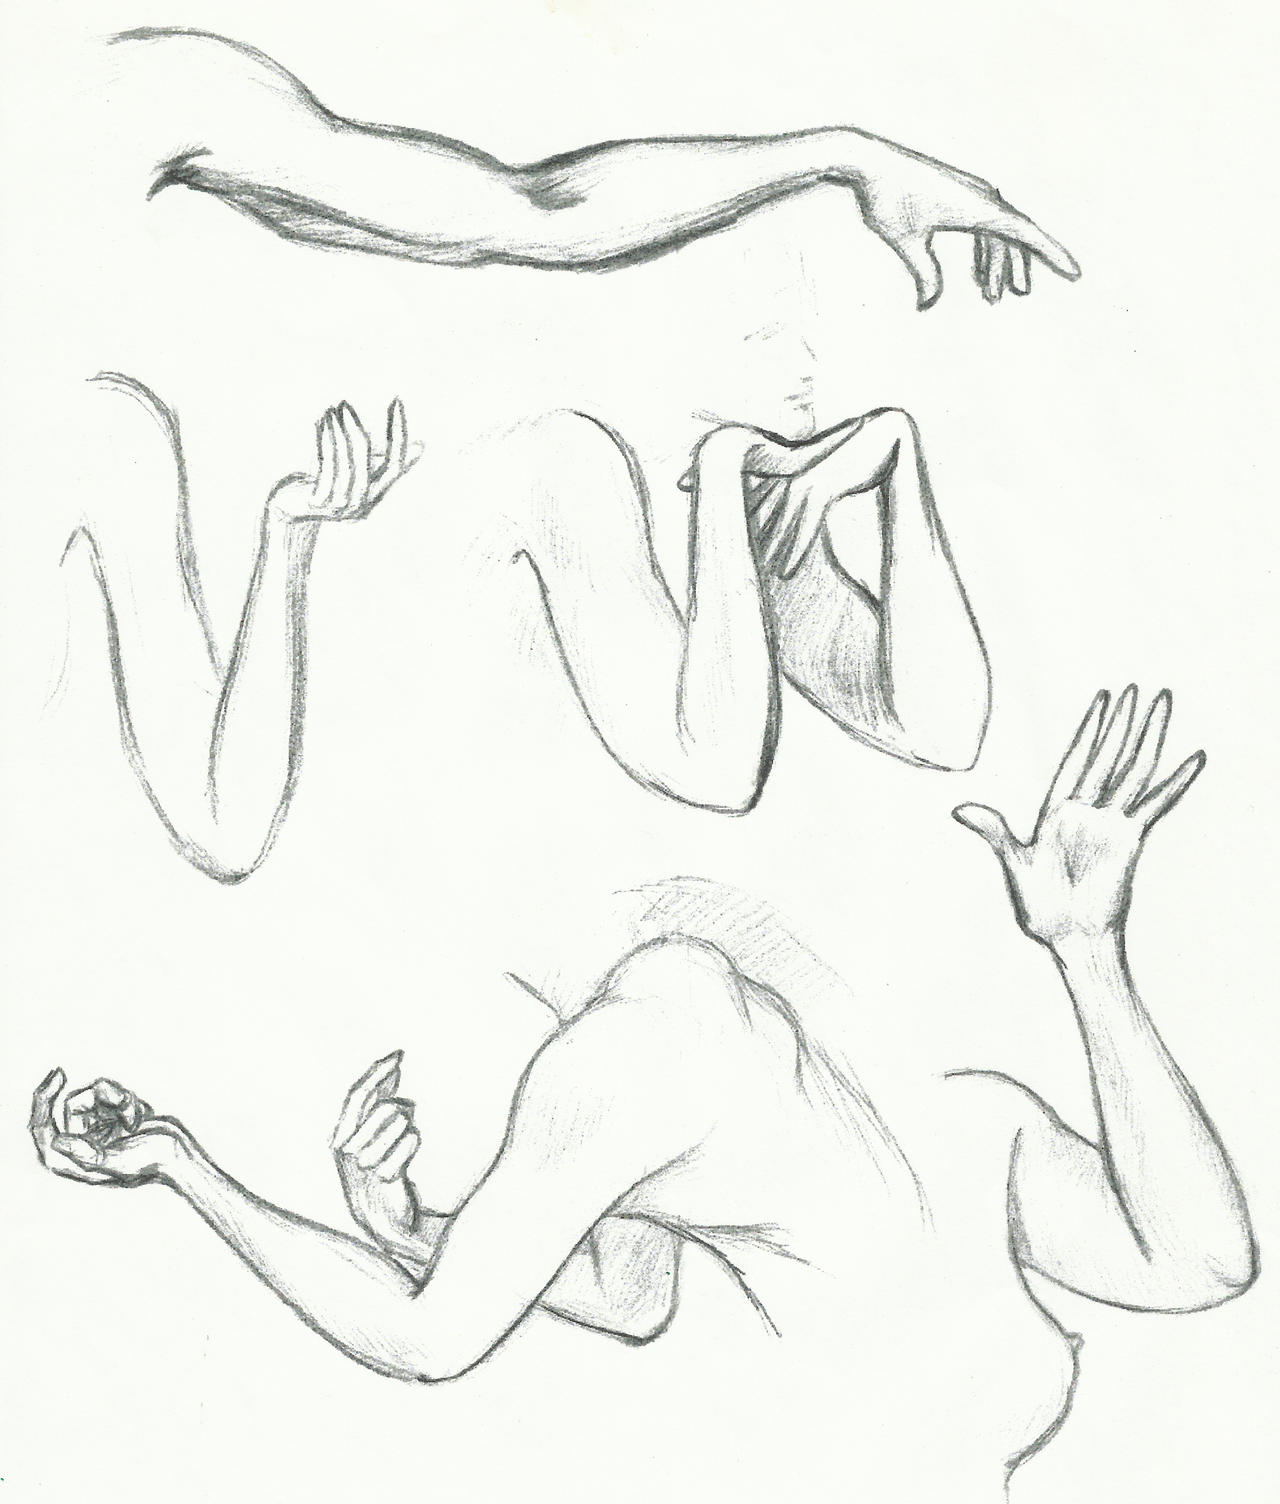 Daily Sketch - Arm/Hand Study By Pixel-Slinger On DeviantArt